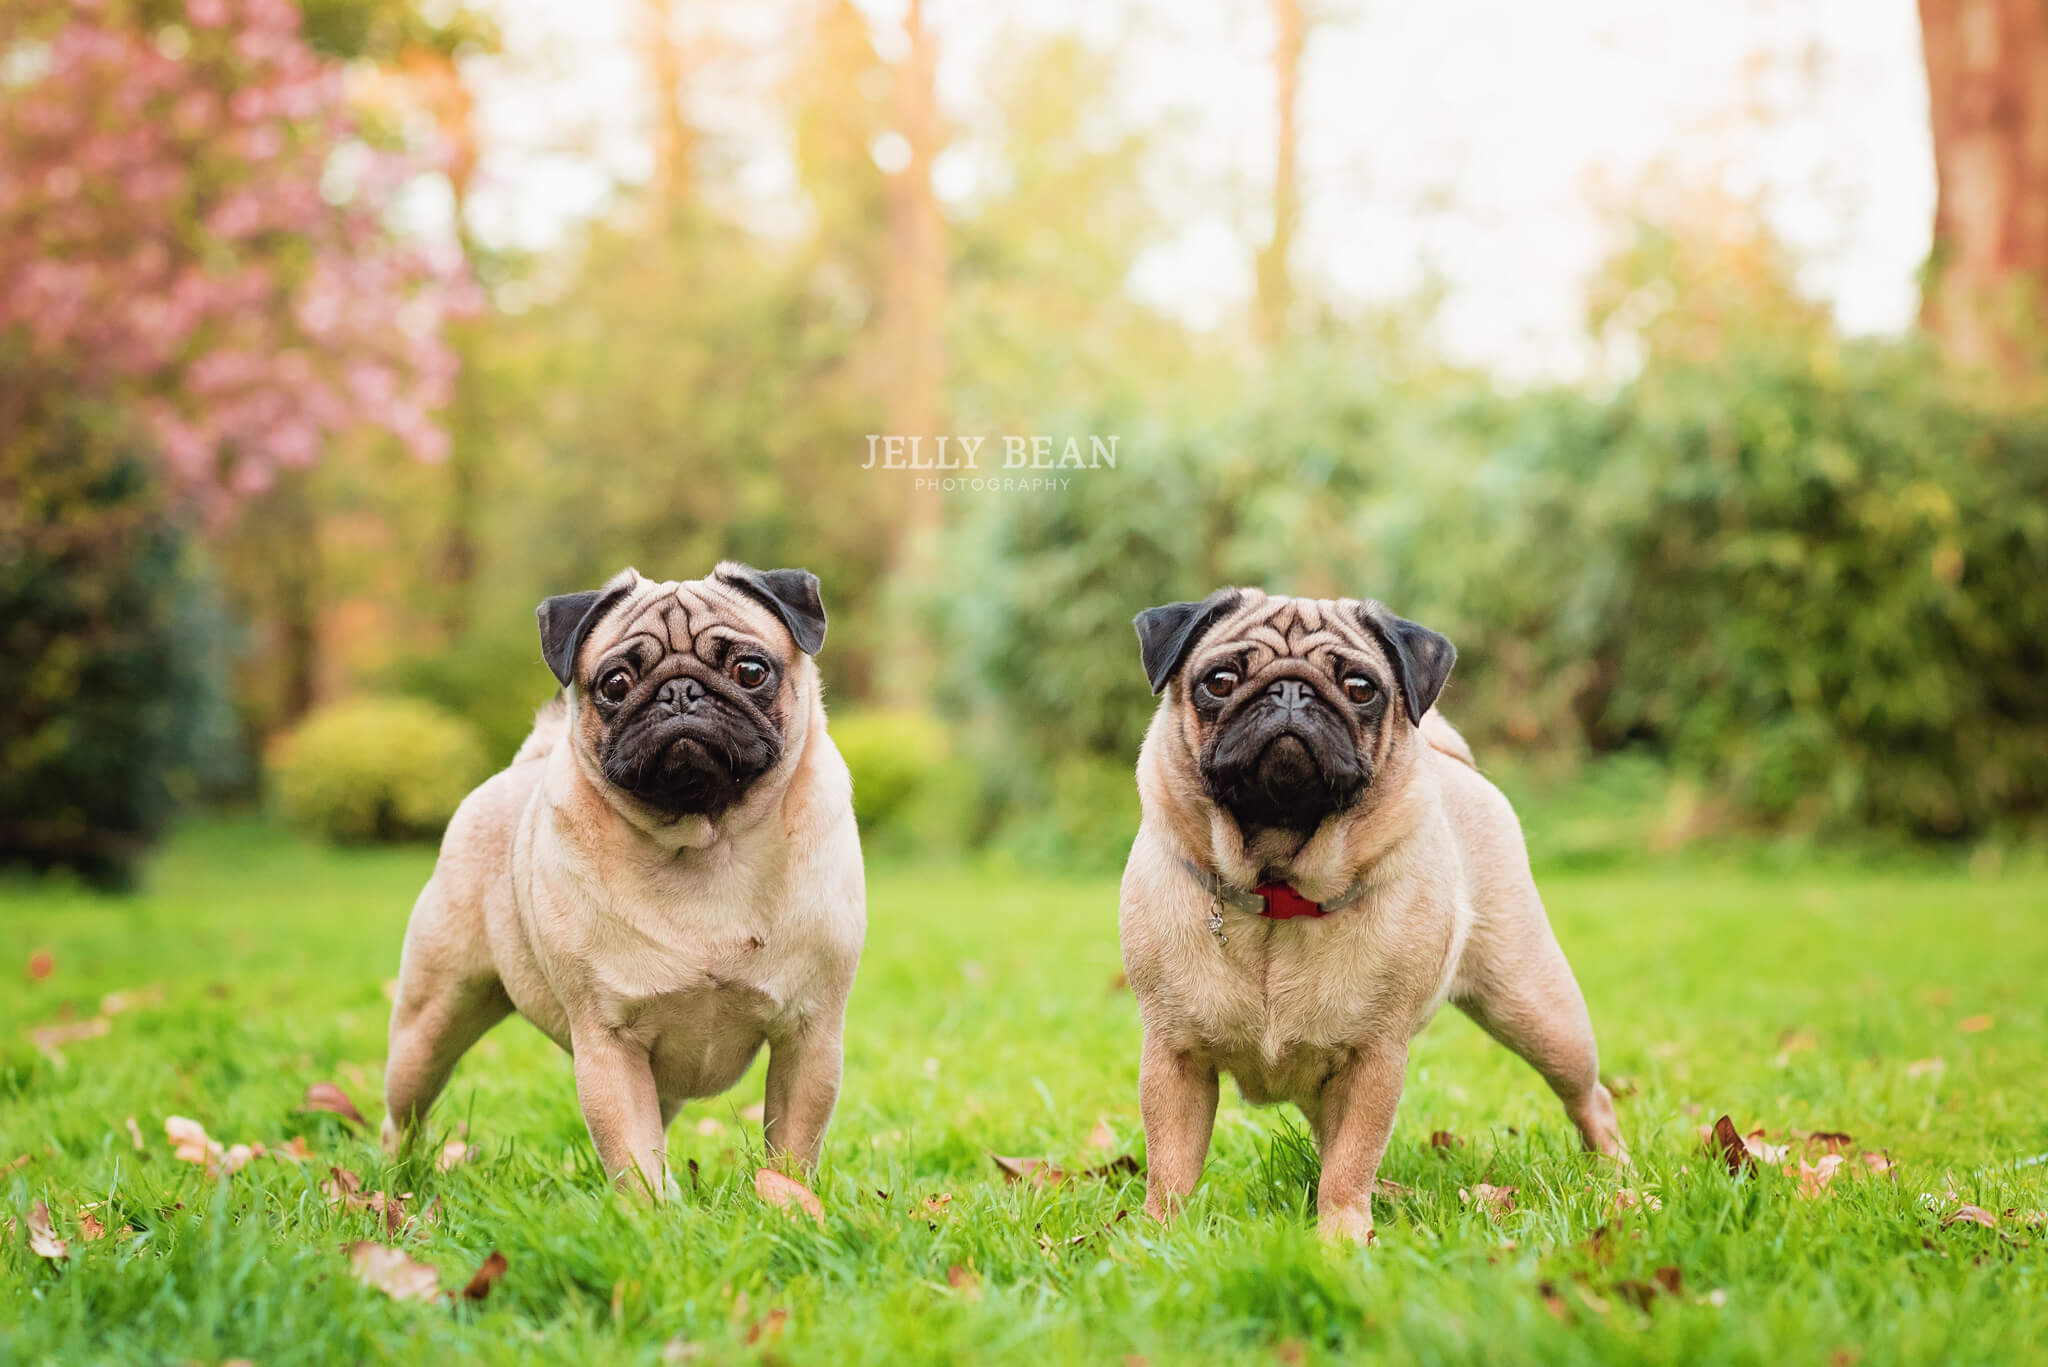 Two pugs standing in grass